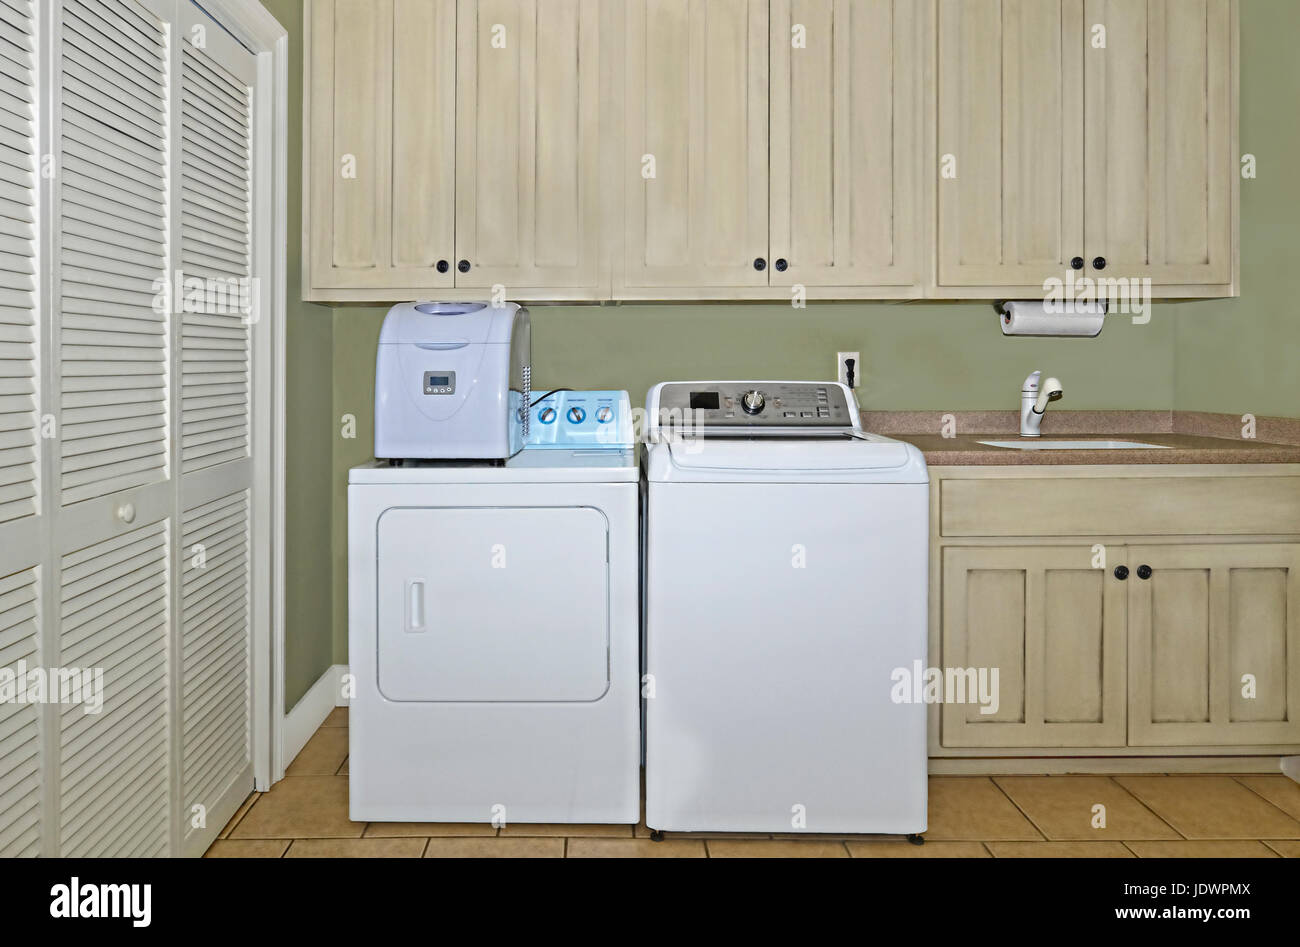 A laundry room with washer,dryer,ice maker,sink,cabinets,and a pantry area.  The cabinets have a light antiqued - Stock Image